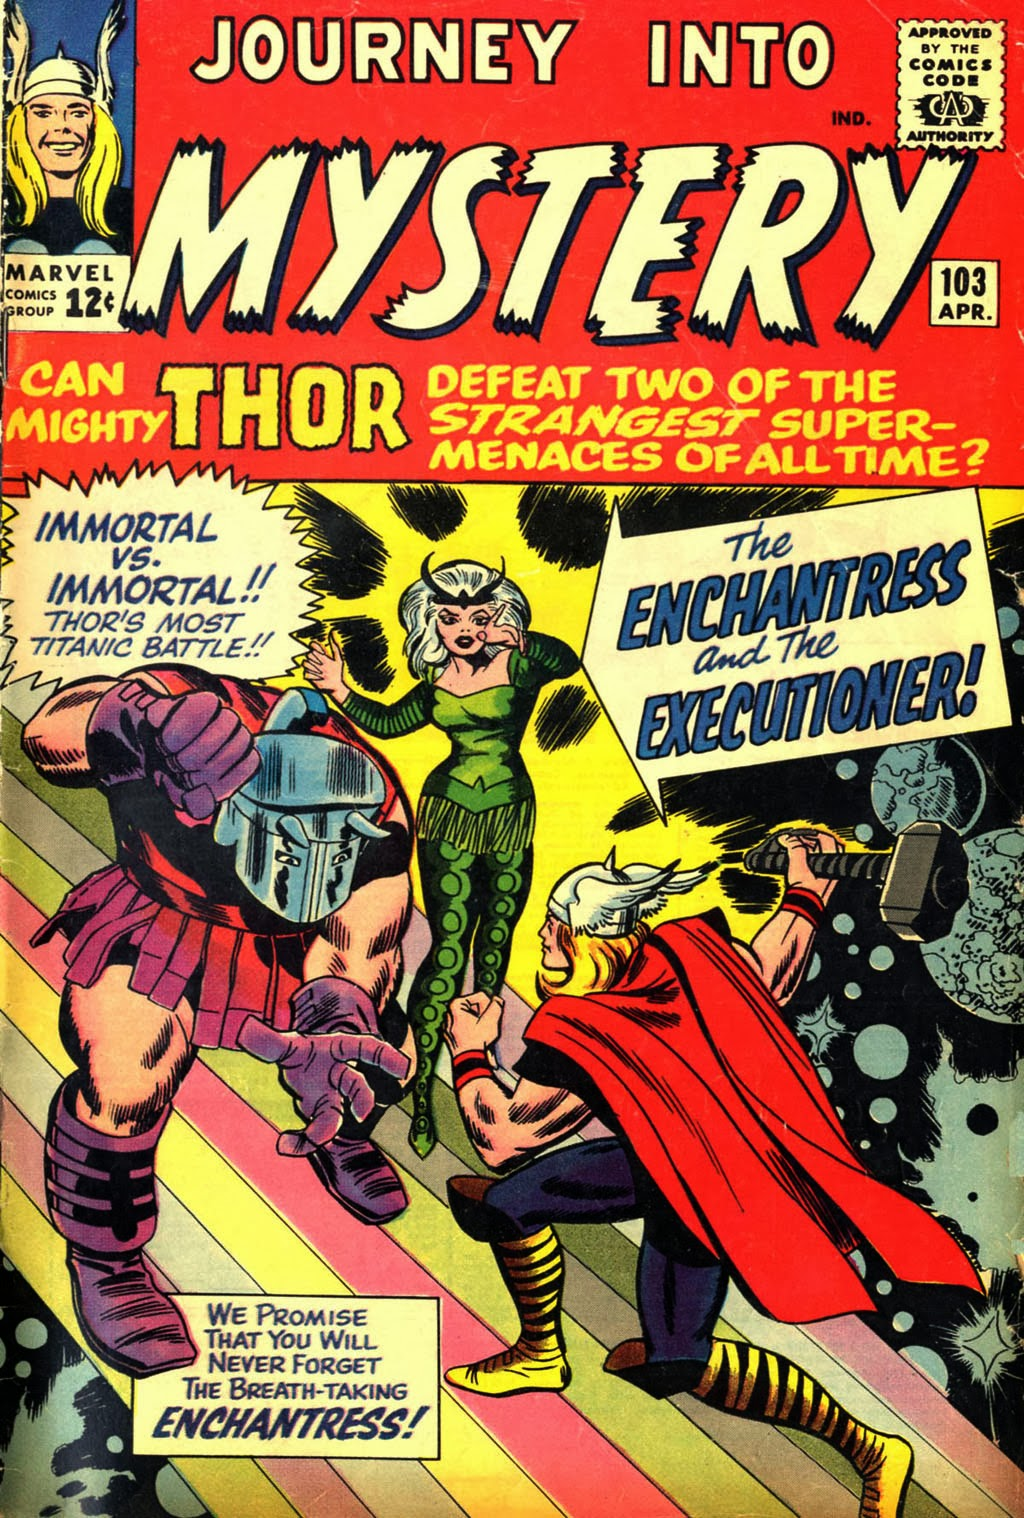 Journey Into Mystery #103 image